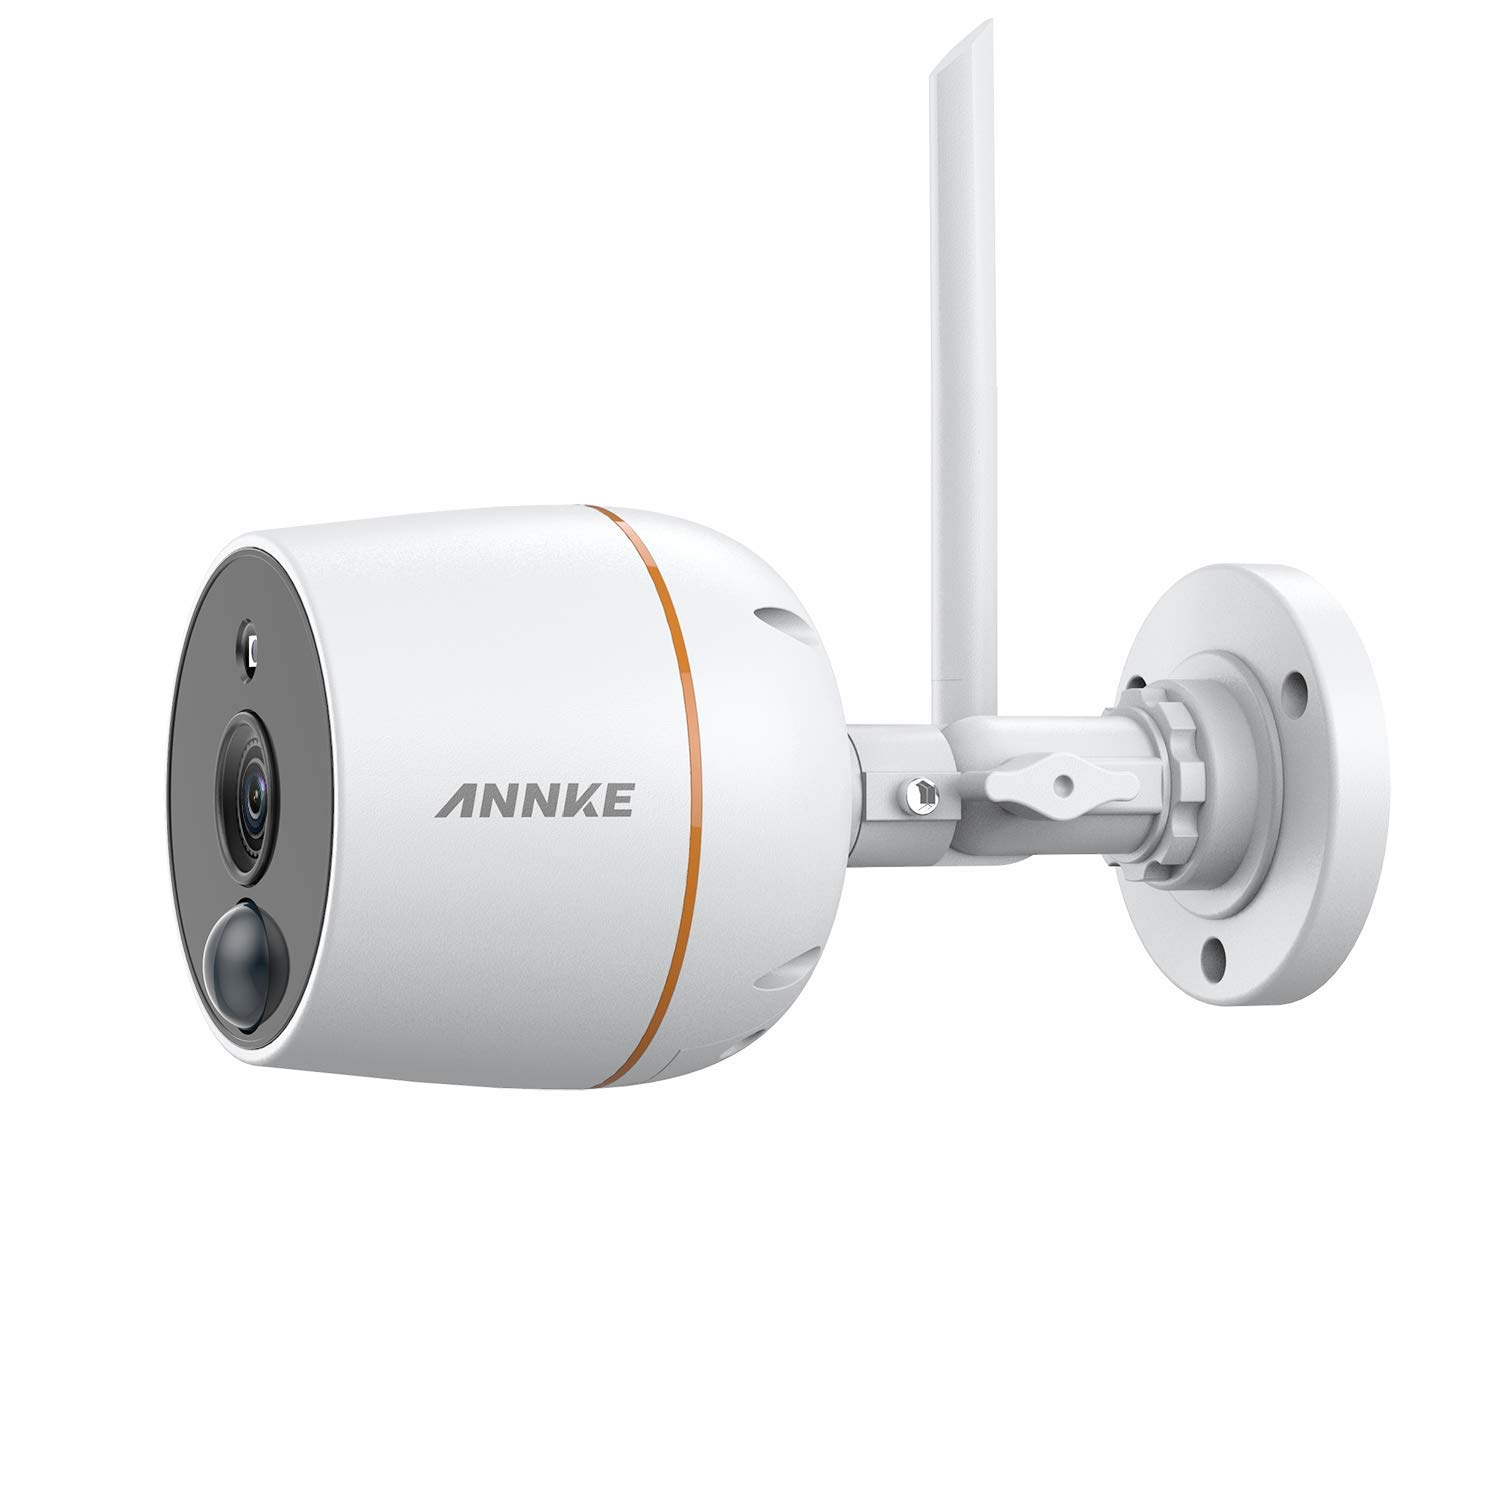 ANNKE 1080P Full HD Wireless Security IP Camera, Smart IR Night Vision, Plug and Play, PIR Motion Detection, Two-Way Audio, APP Alarm Push, Remote Access, IP66 Surveillance Bullet WiFi Camera